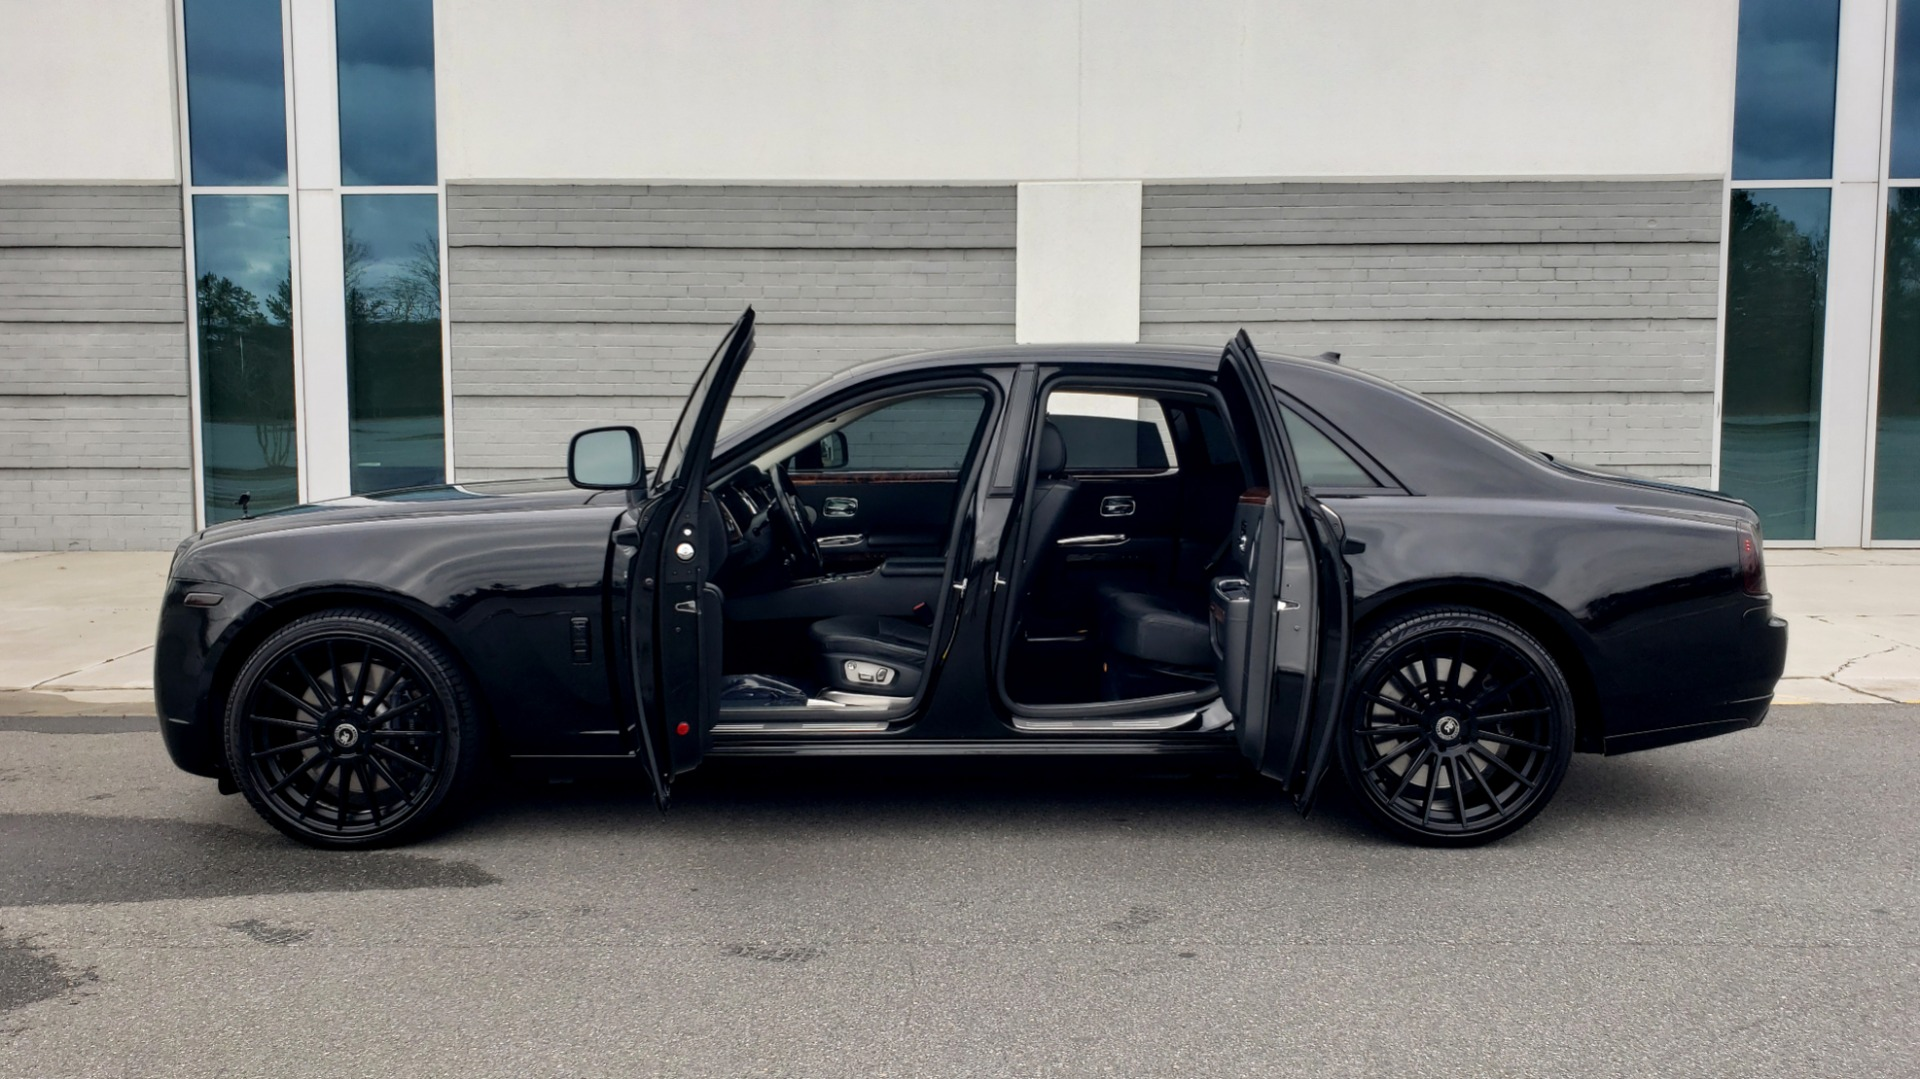 Used 2010 Rolls-Royce GHOST 6.6L TURBO V12 (563HP) / NAV / SUNROOF / SUICIDE DOORS for sale $89,000 at Formula Imports in Charlotte NC 28227 12